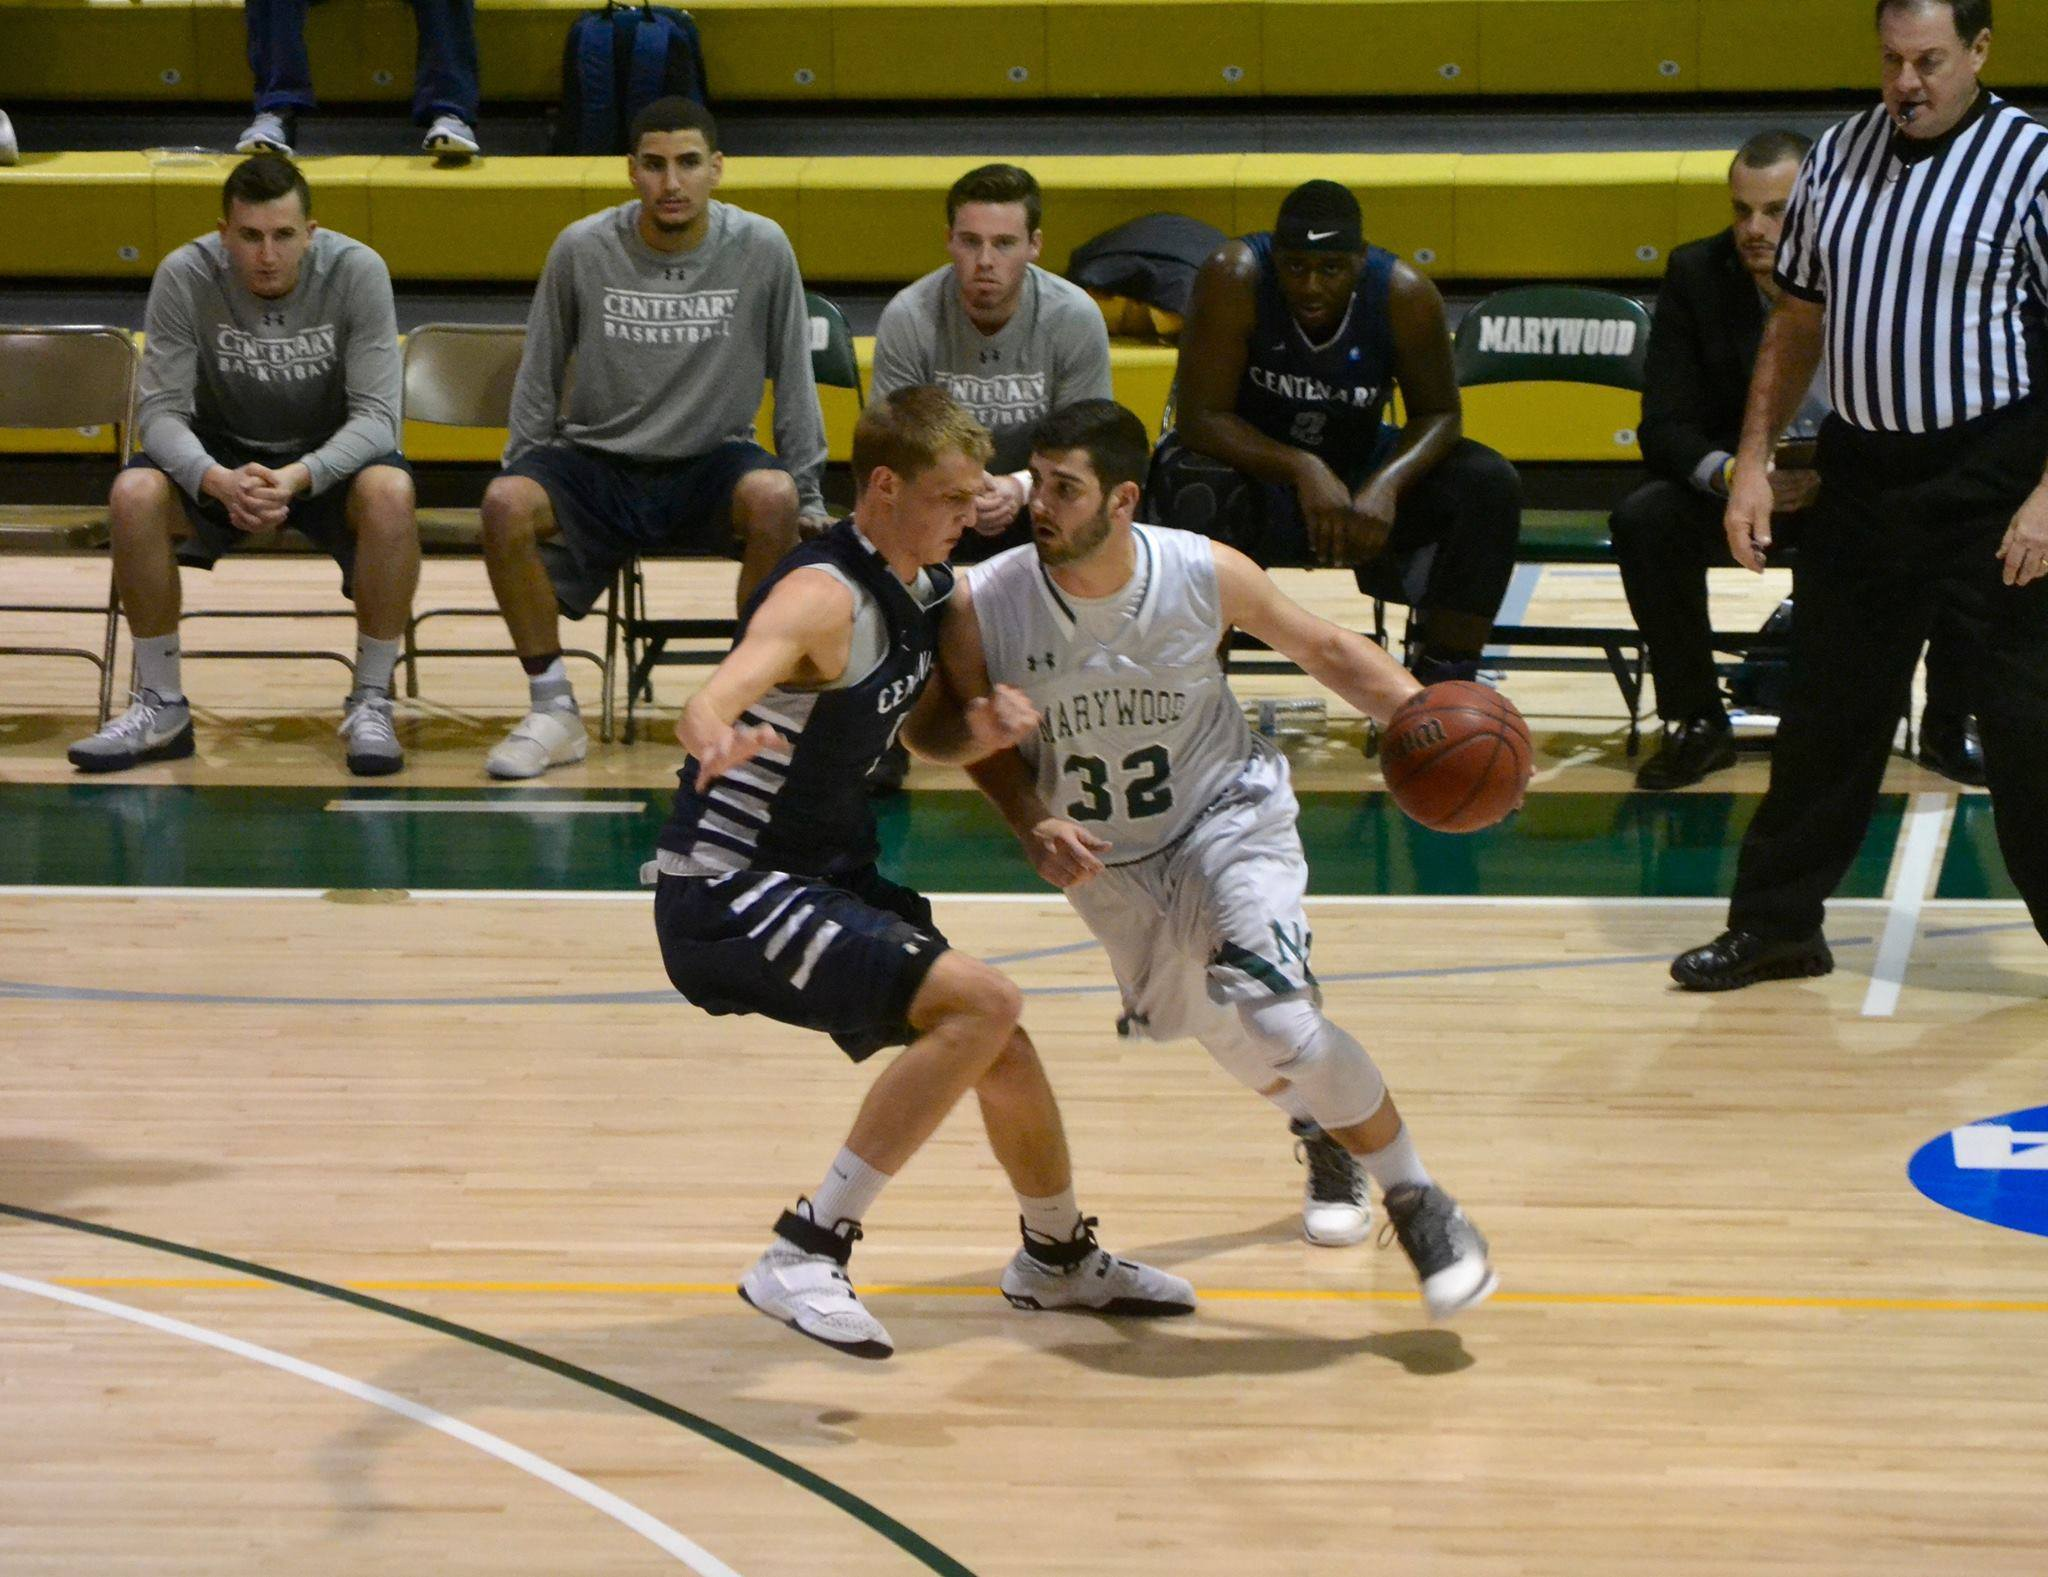 Marywood junior guard James Curley drives on a Centenary defender in a 63-77 home opener loss.